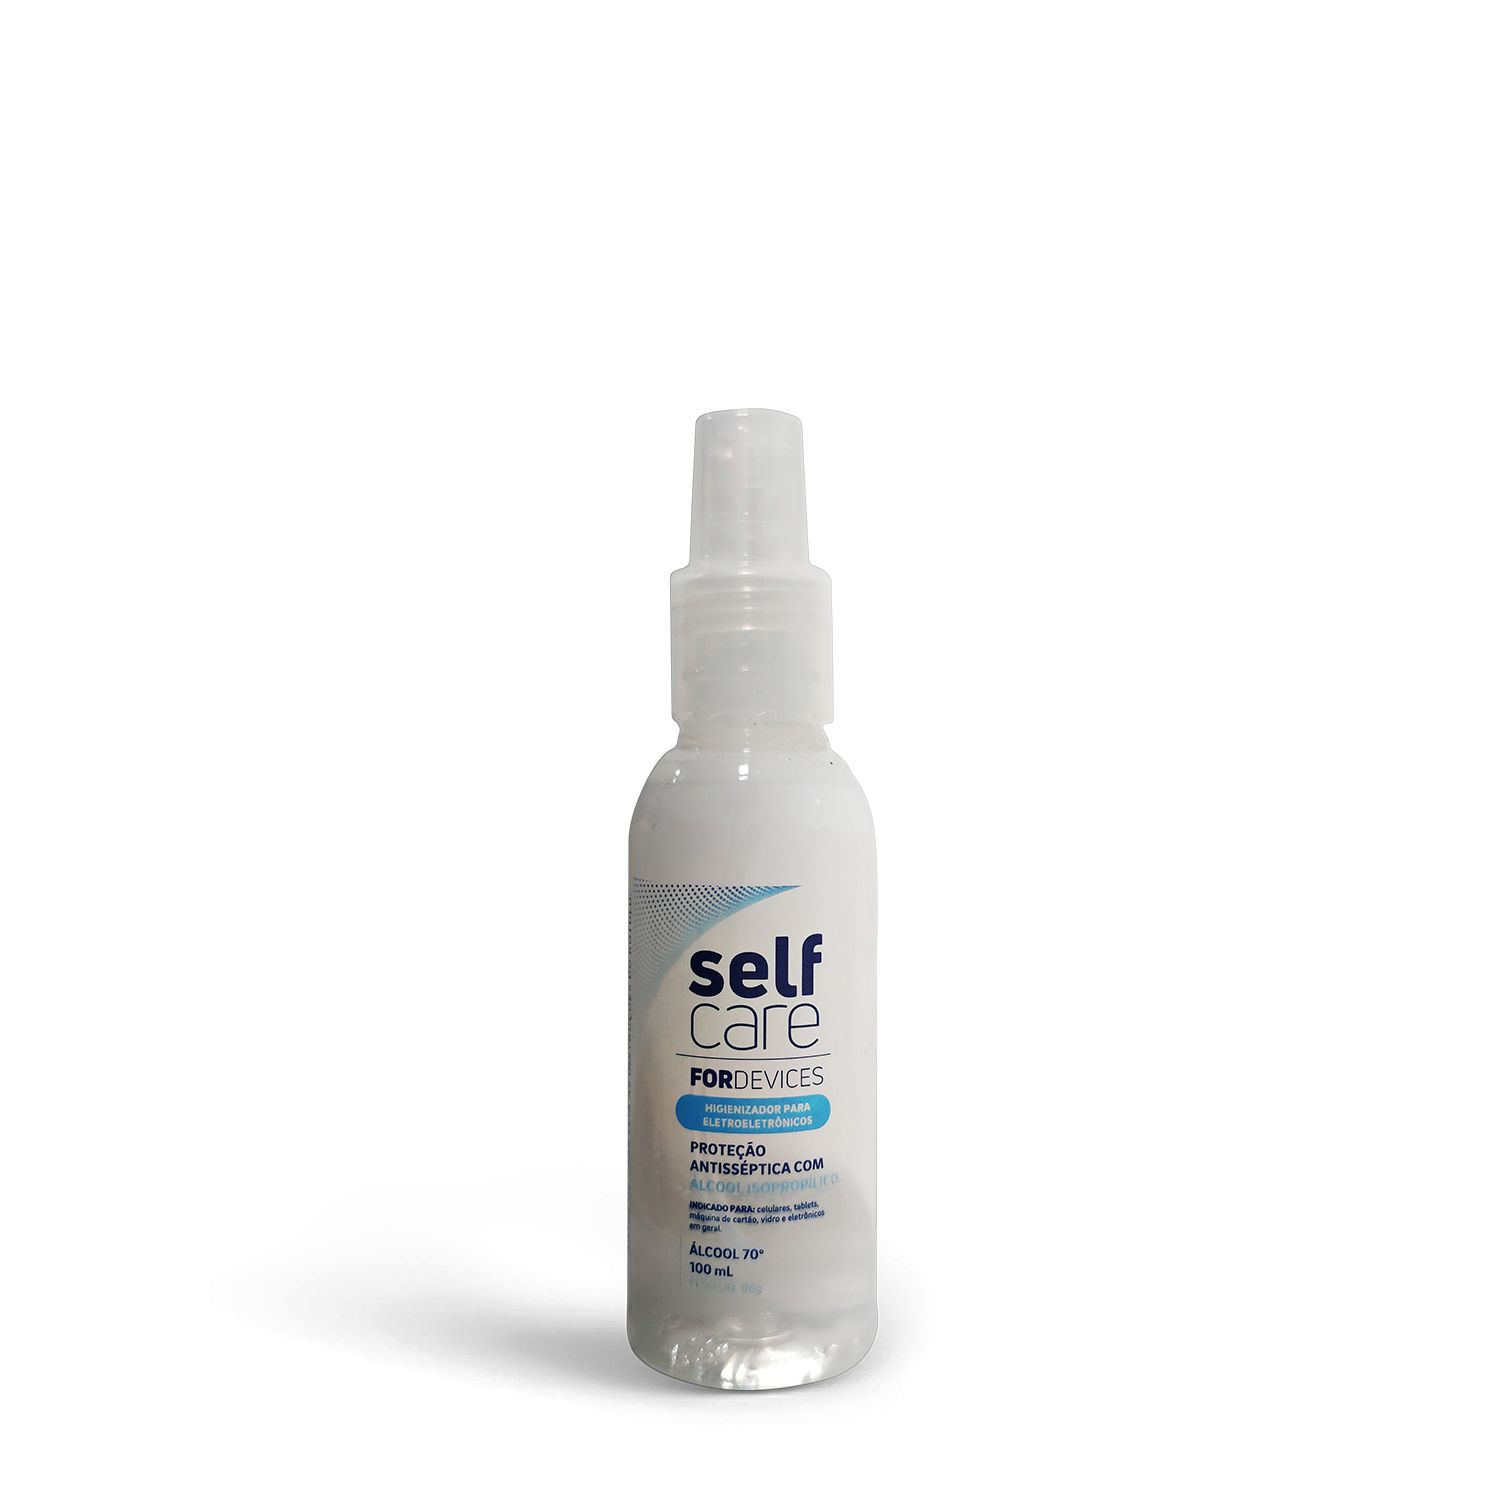 Self Care - Álcool Isopropanol 100mL